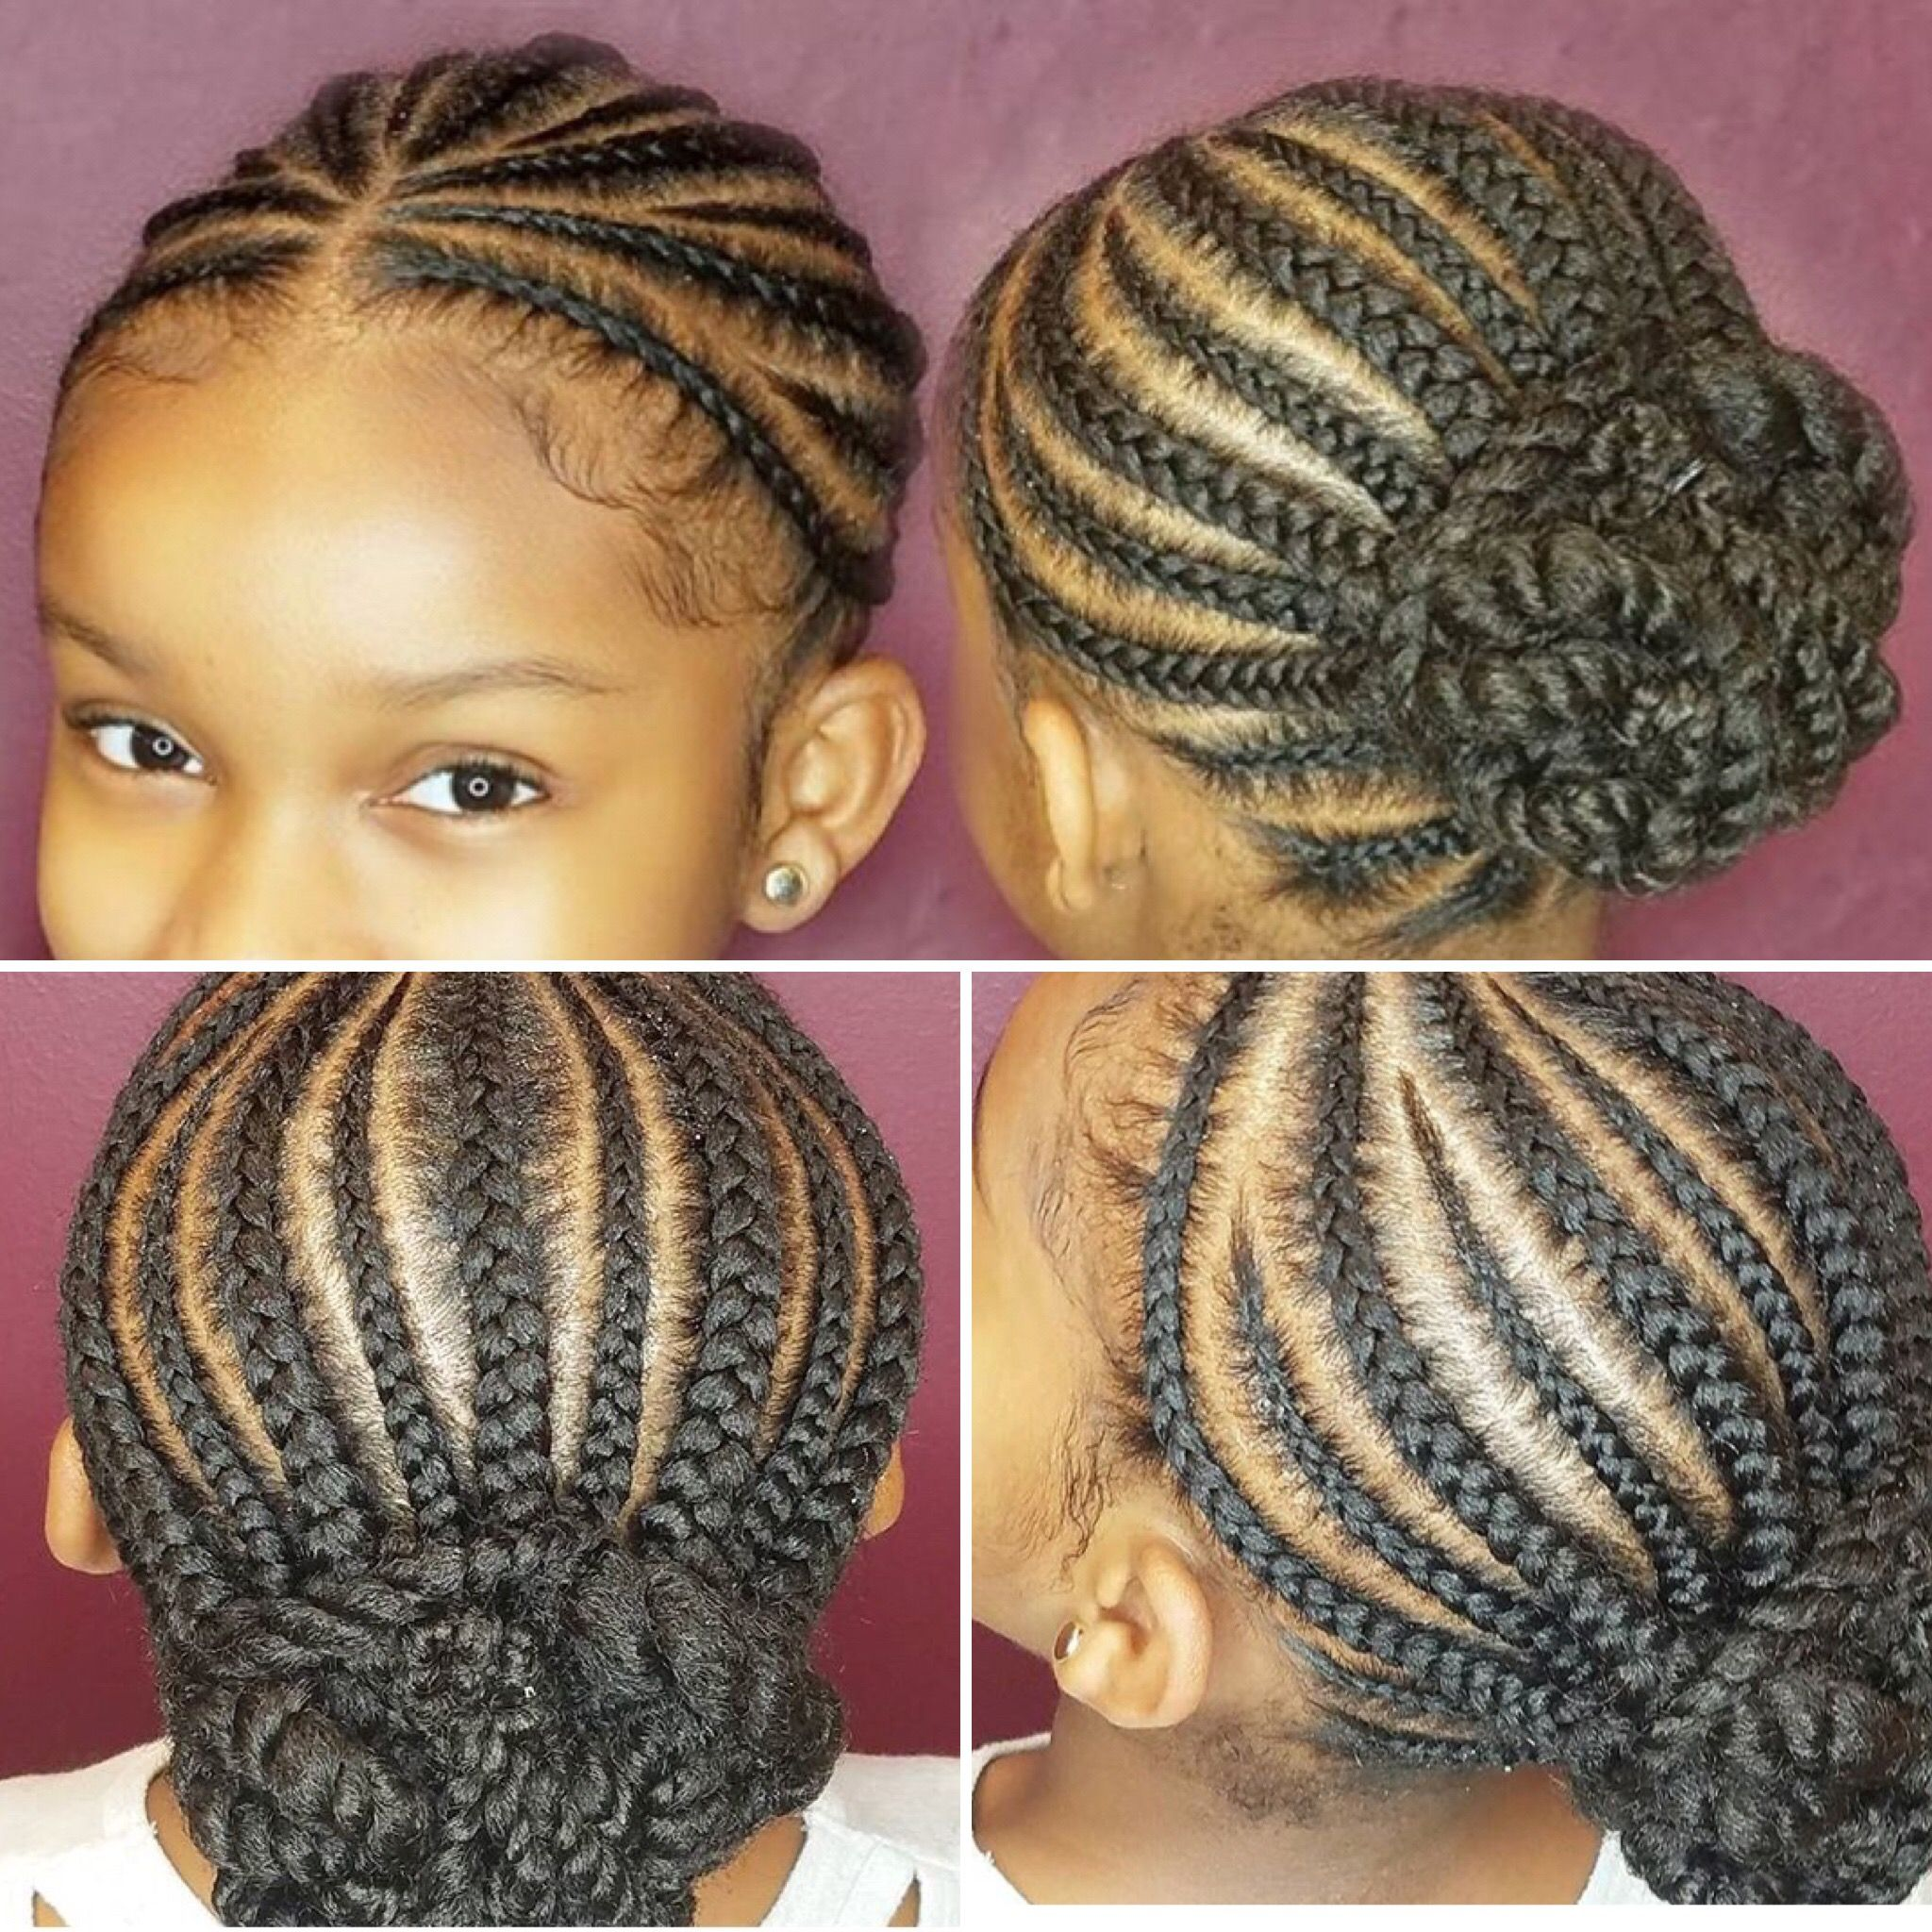 Pin By Teshaye Shingler Artiss On Braids Cornrow Hairstyles Hair Styles Natural Hair Styles